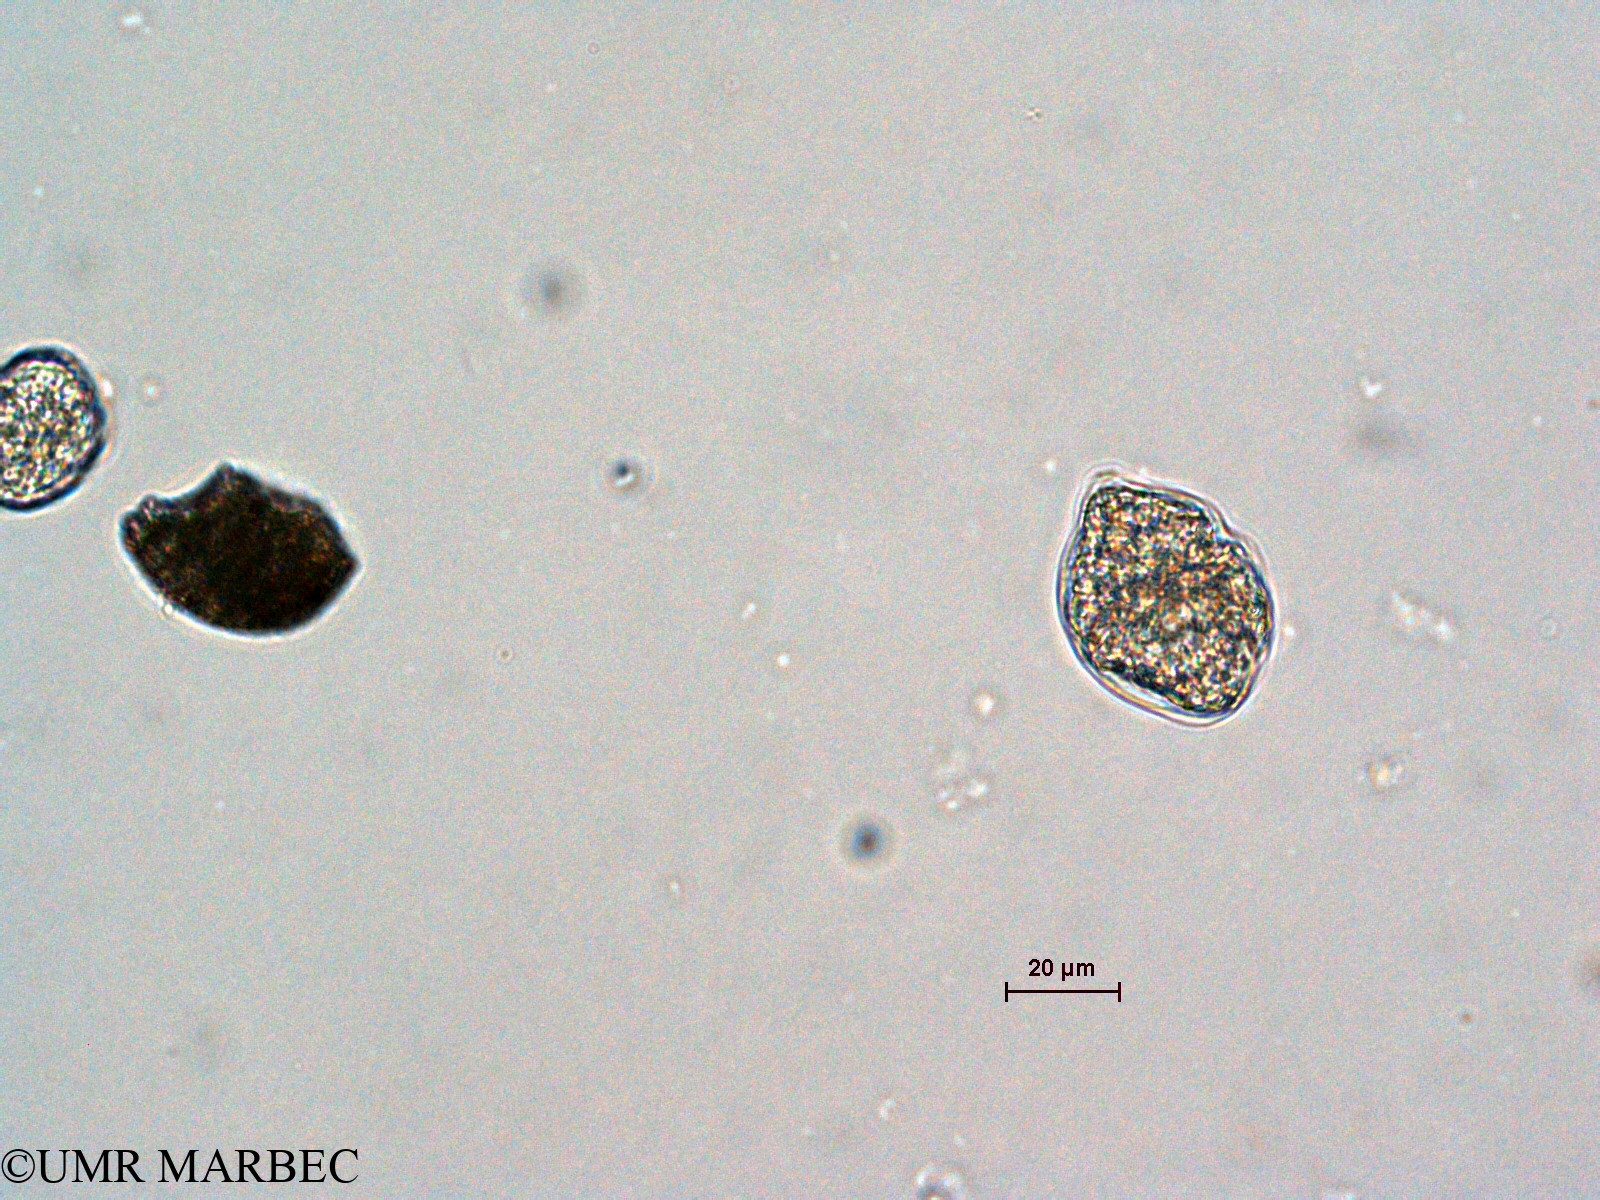 phyto/Scattered_Islands/all/COMMA April 2011/Gyrodinium sp2 (ancien Gyrodinium sp1 -3)(copy).jpg